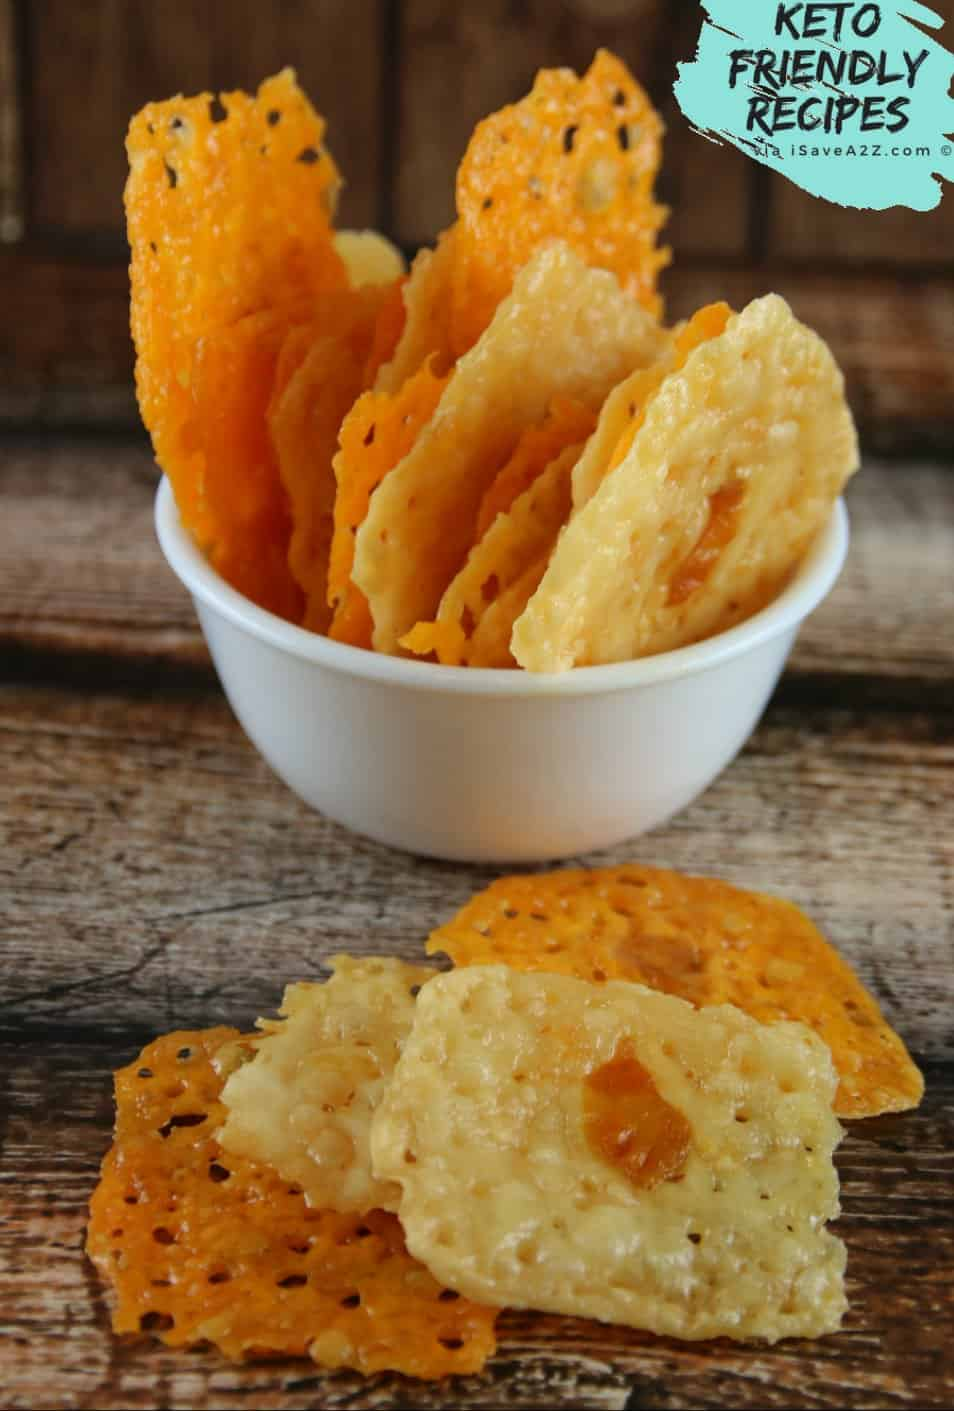 Lazy Keto Chips Only 2 Ingredients Needed Isavea2z Com